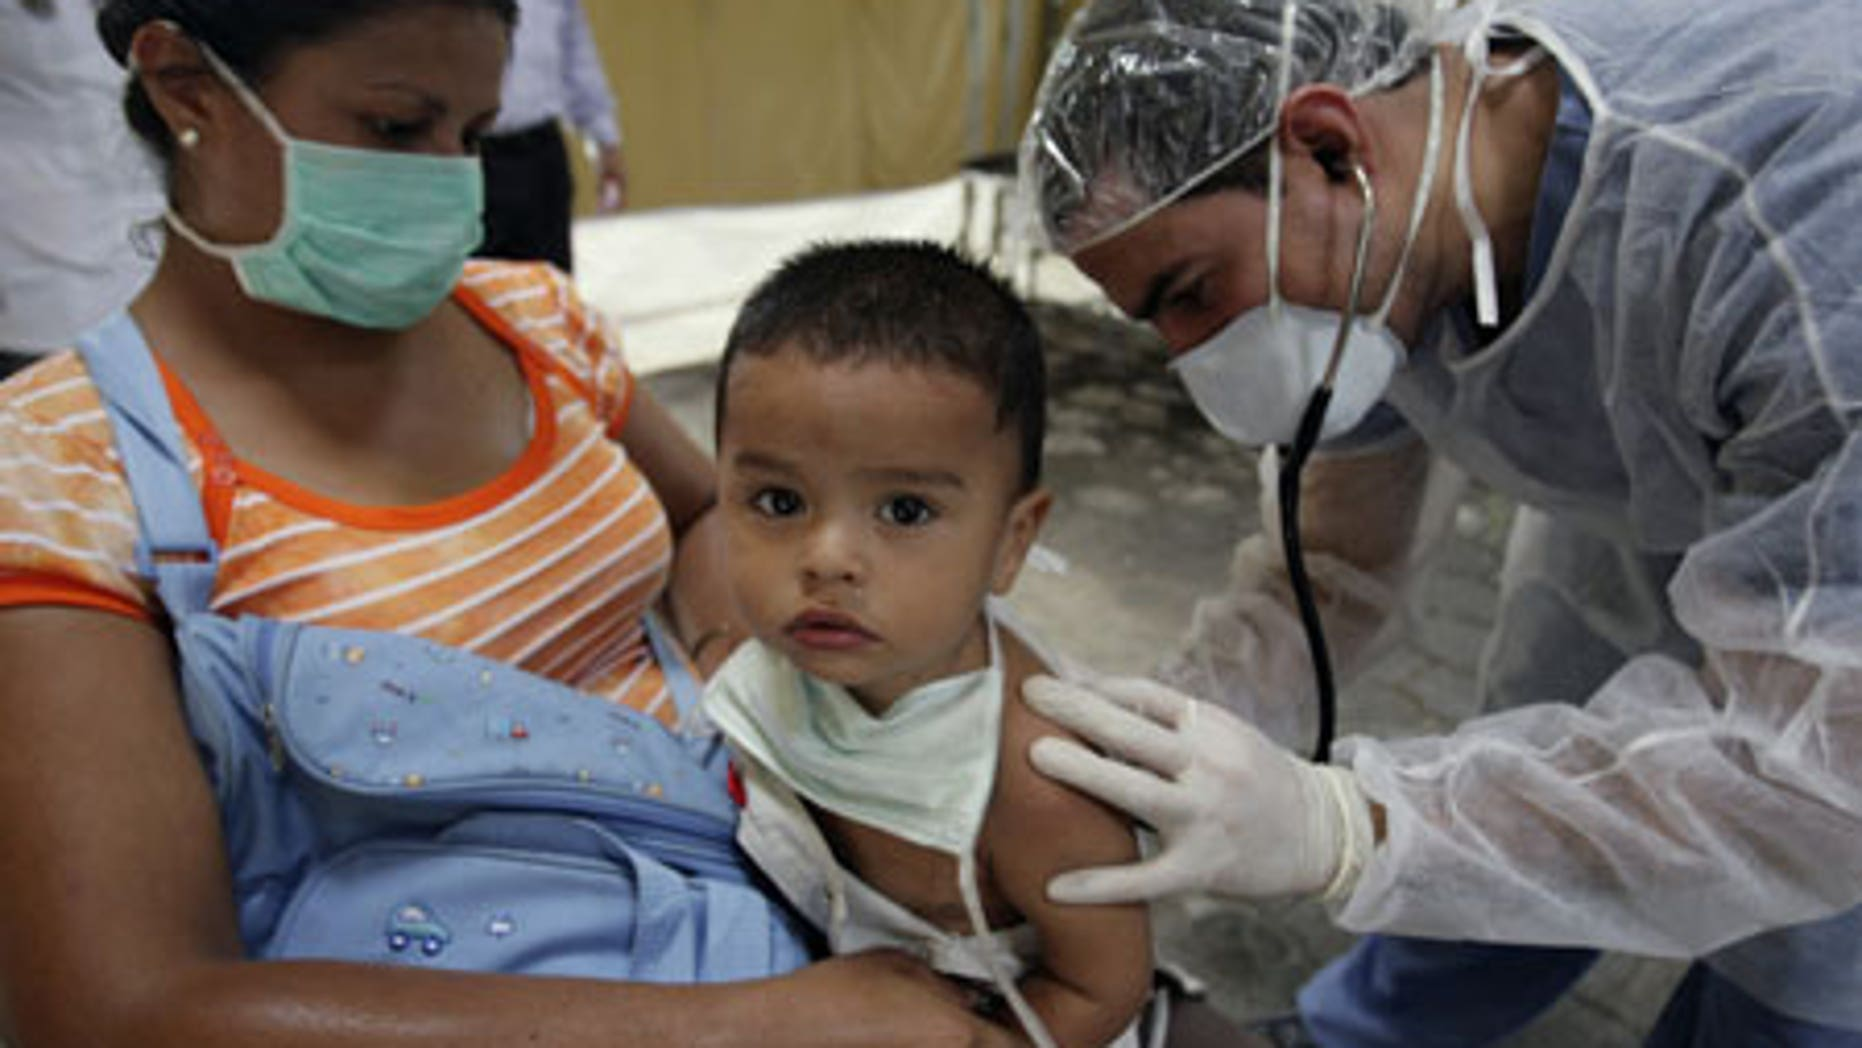 June 2, 2009: A doctor checks on a child suspected of having H1N1 at a mobile clinic in the Children's Hospital in Nicaragua.